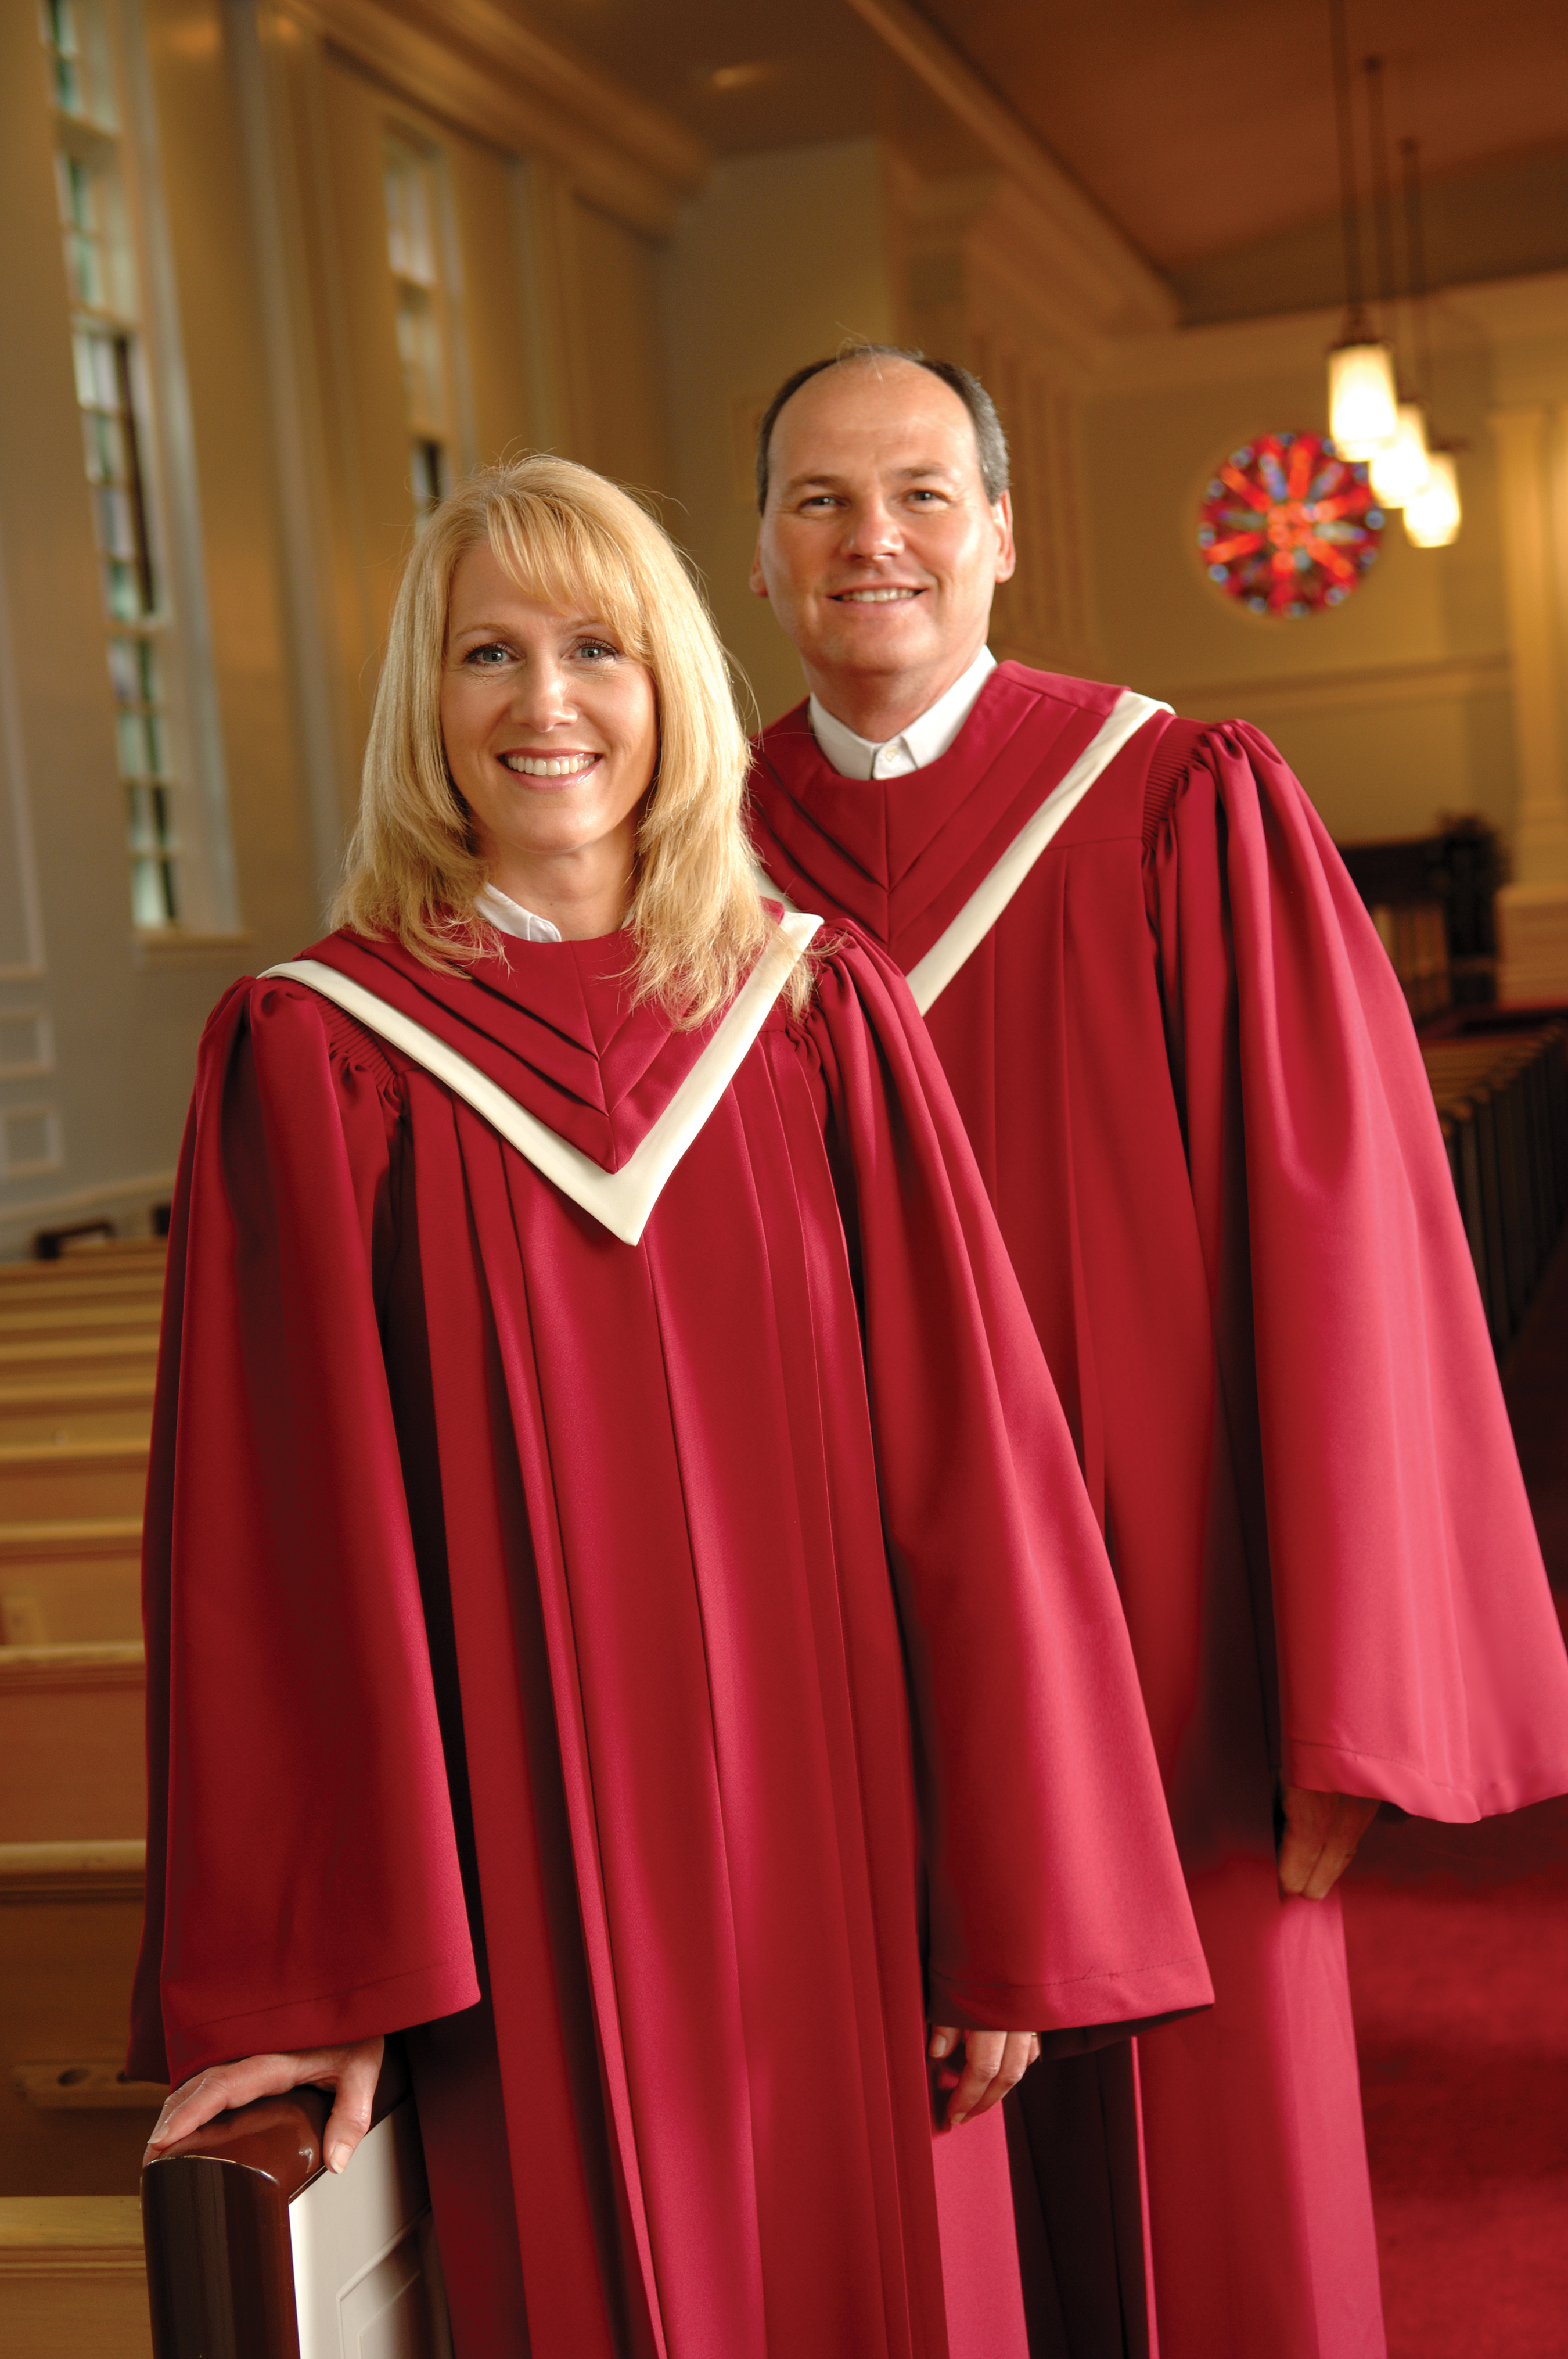 Choir Robes Church Choir Carolina Robes